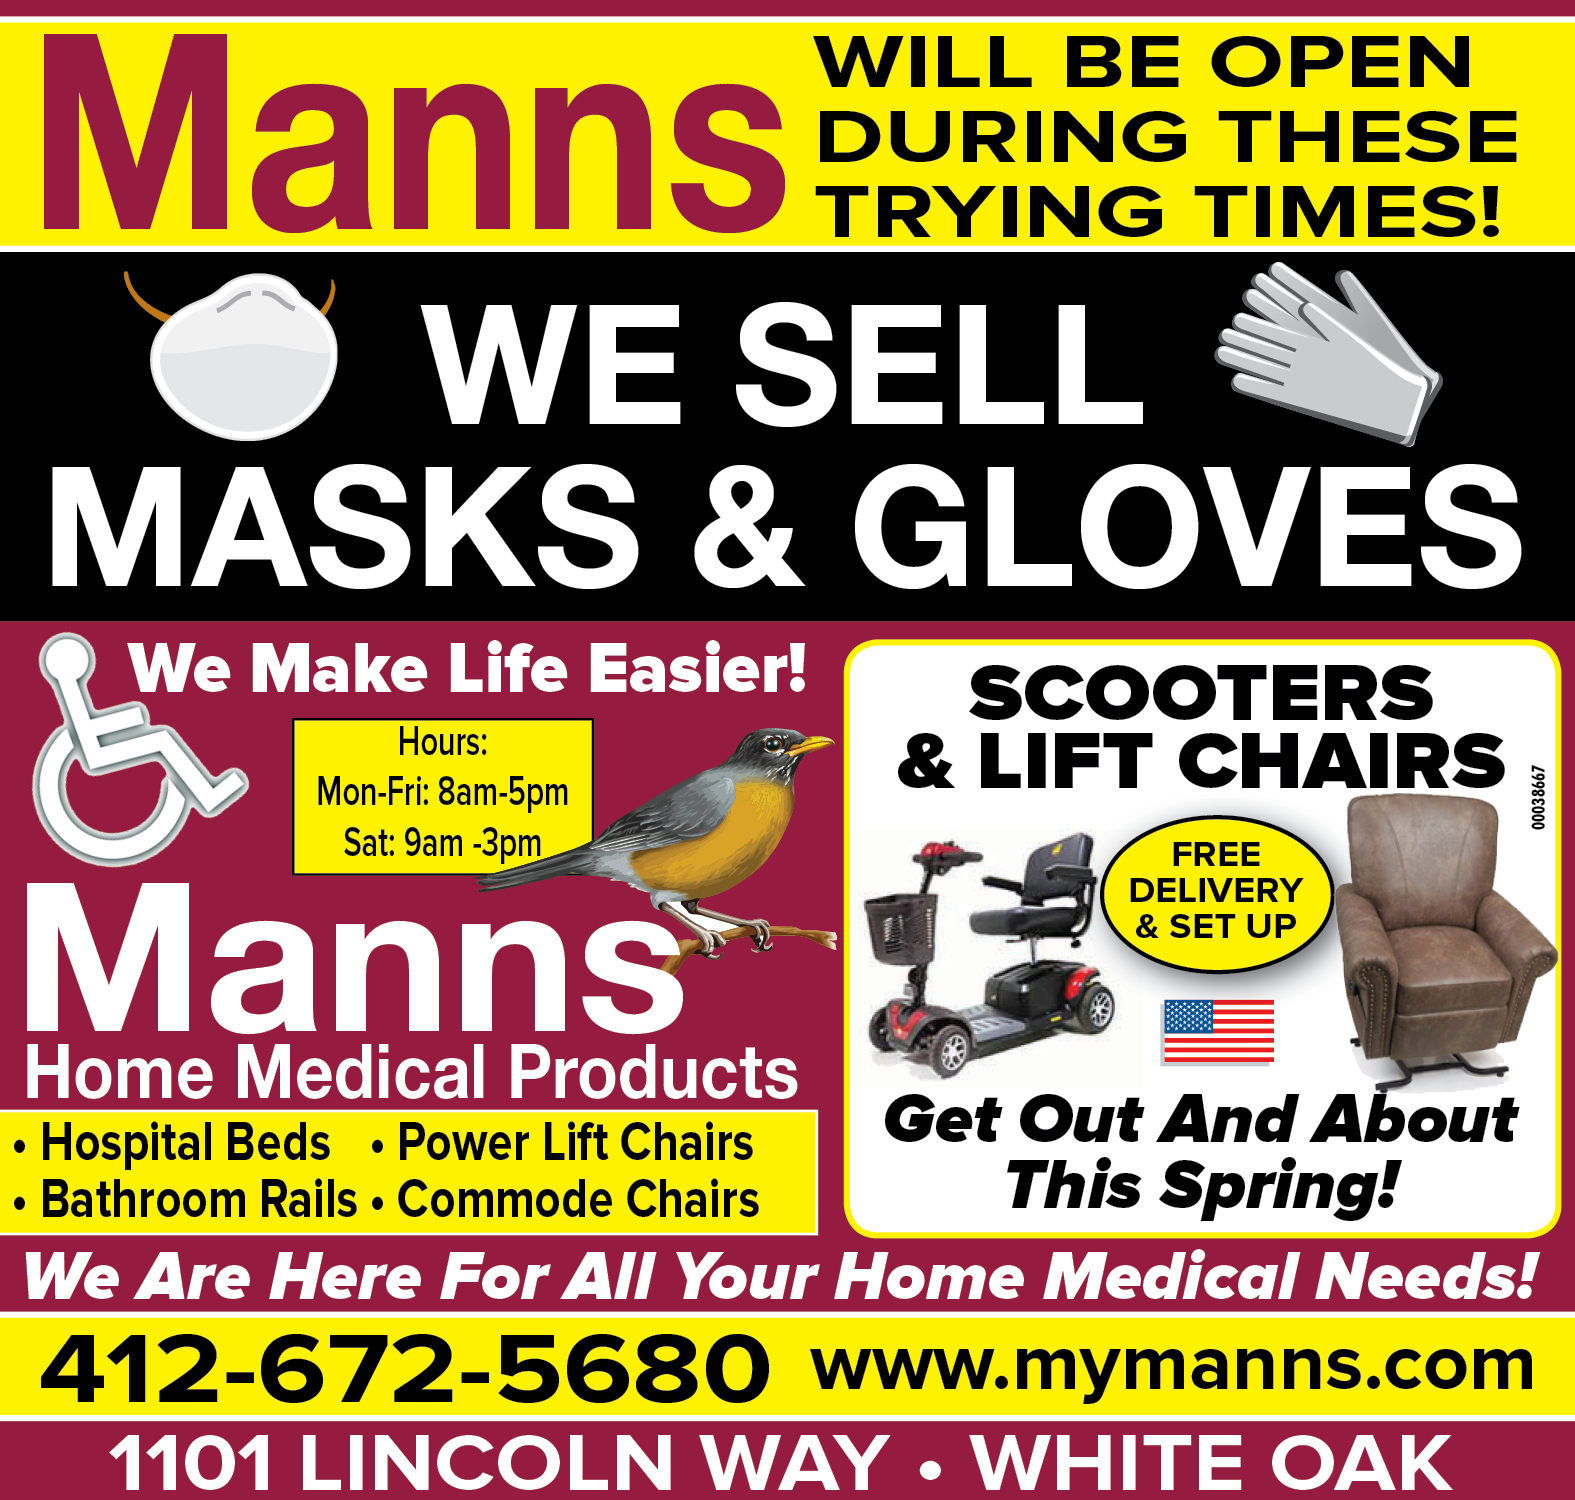 00039538_Manns_3x5_Scooters